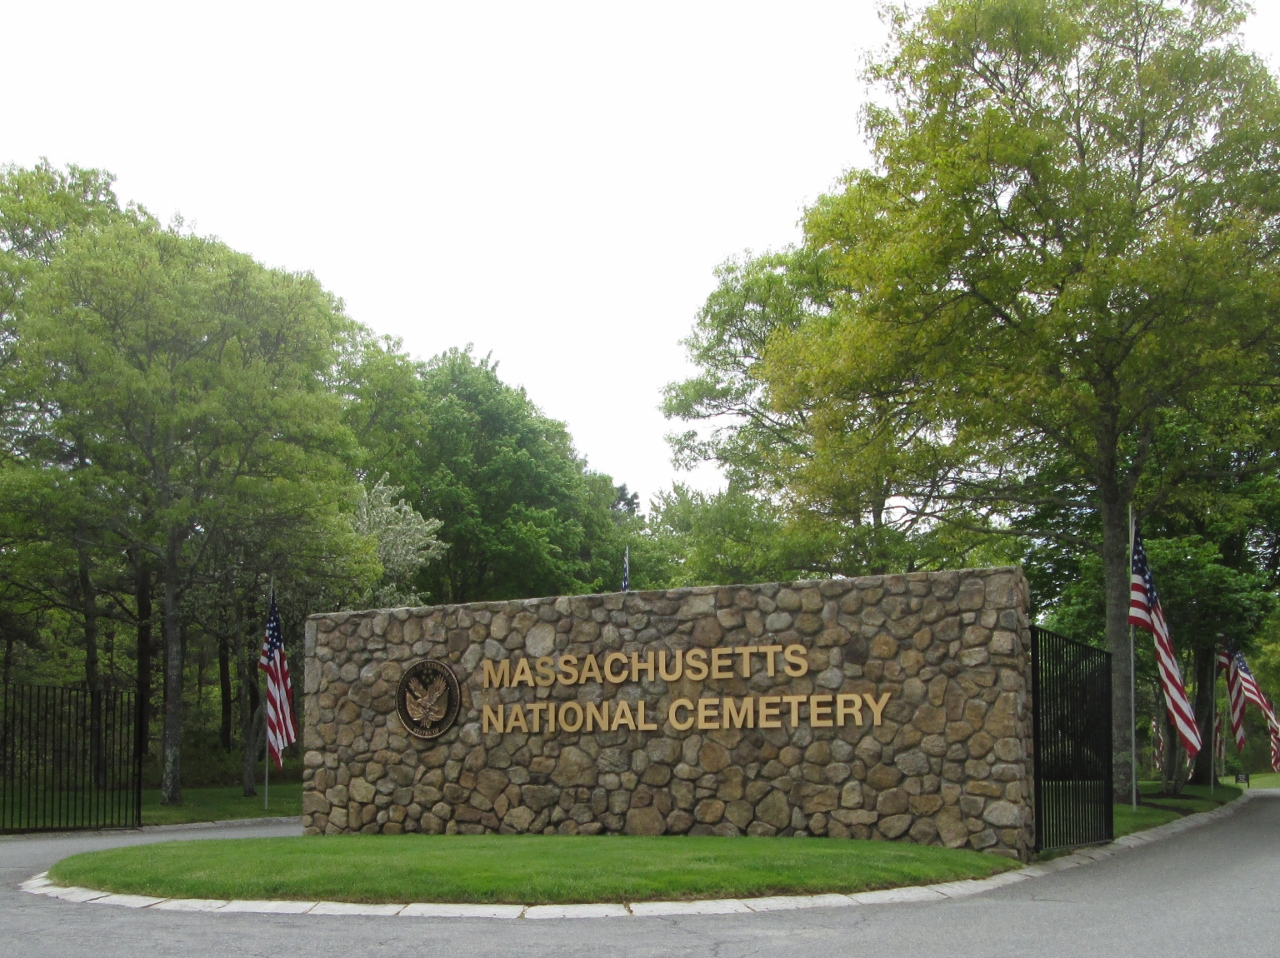 Massachusetts National Cemetery